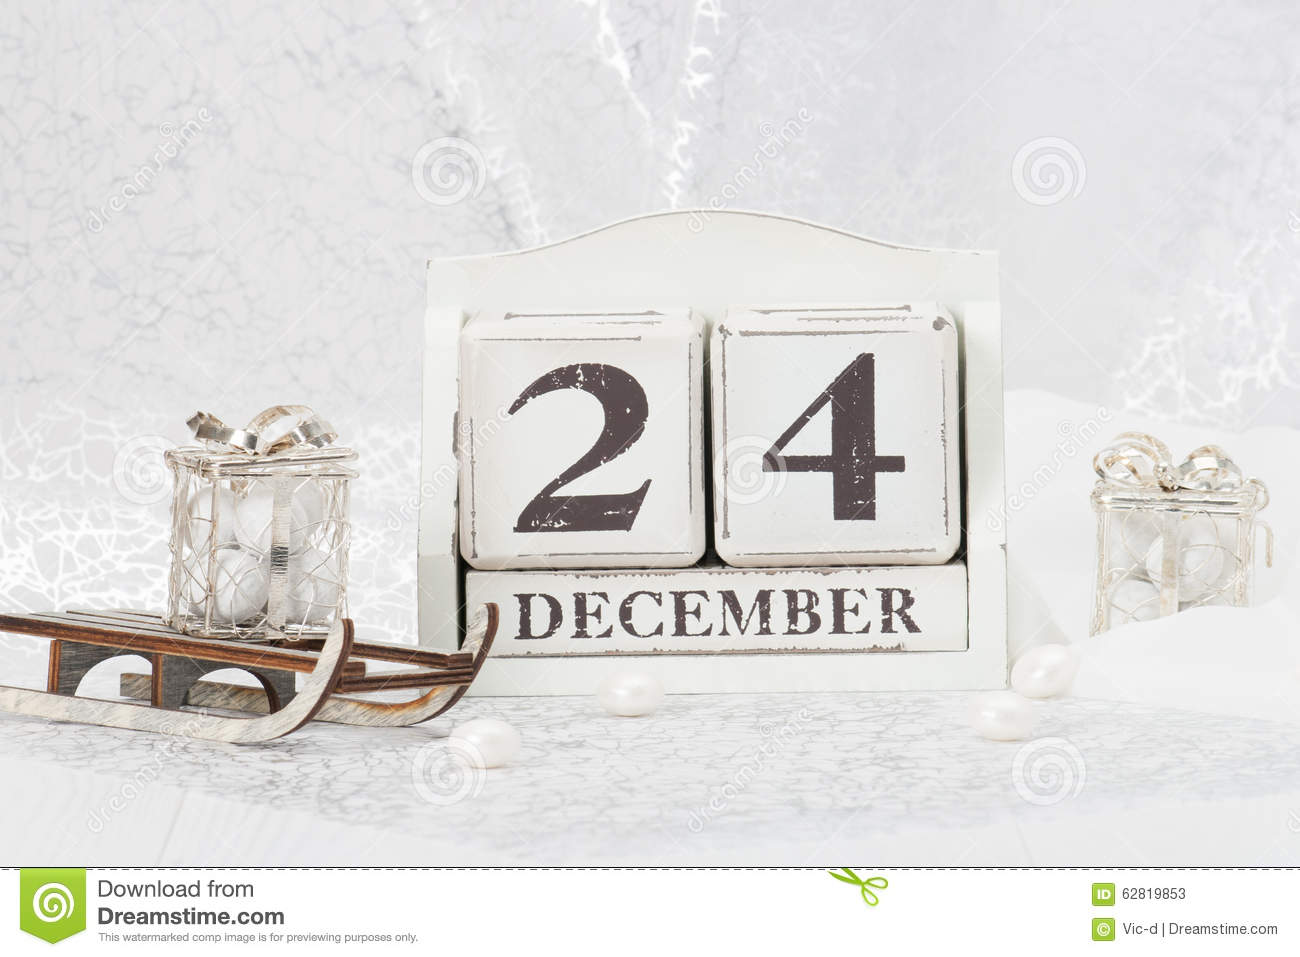 christmas eve date on calendar december 24